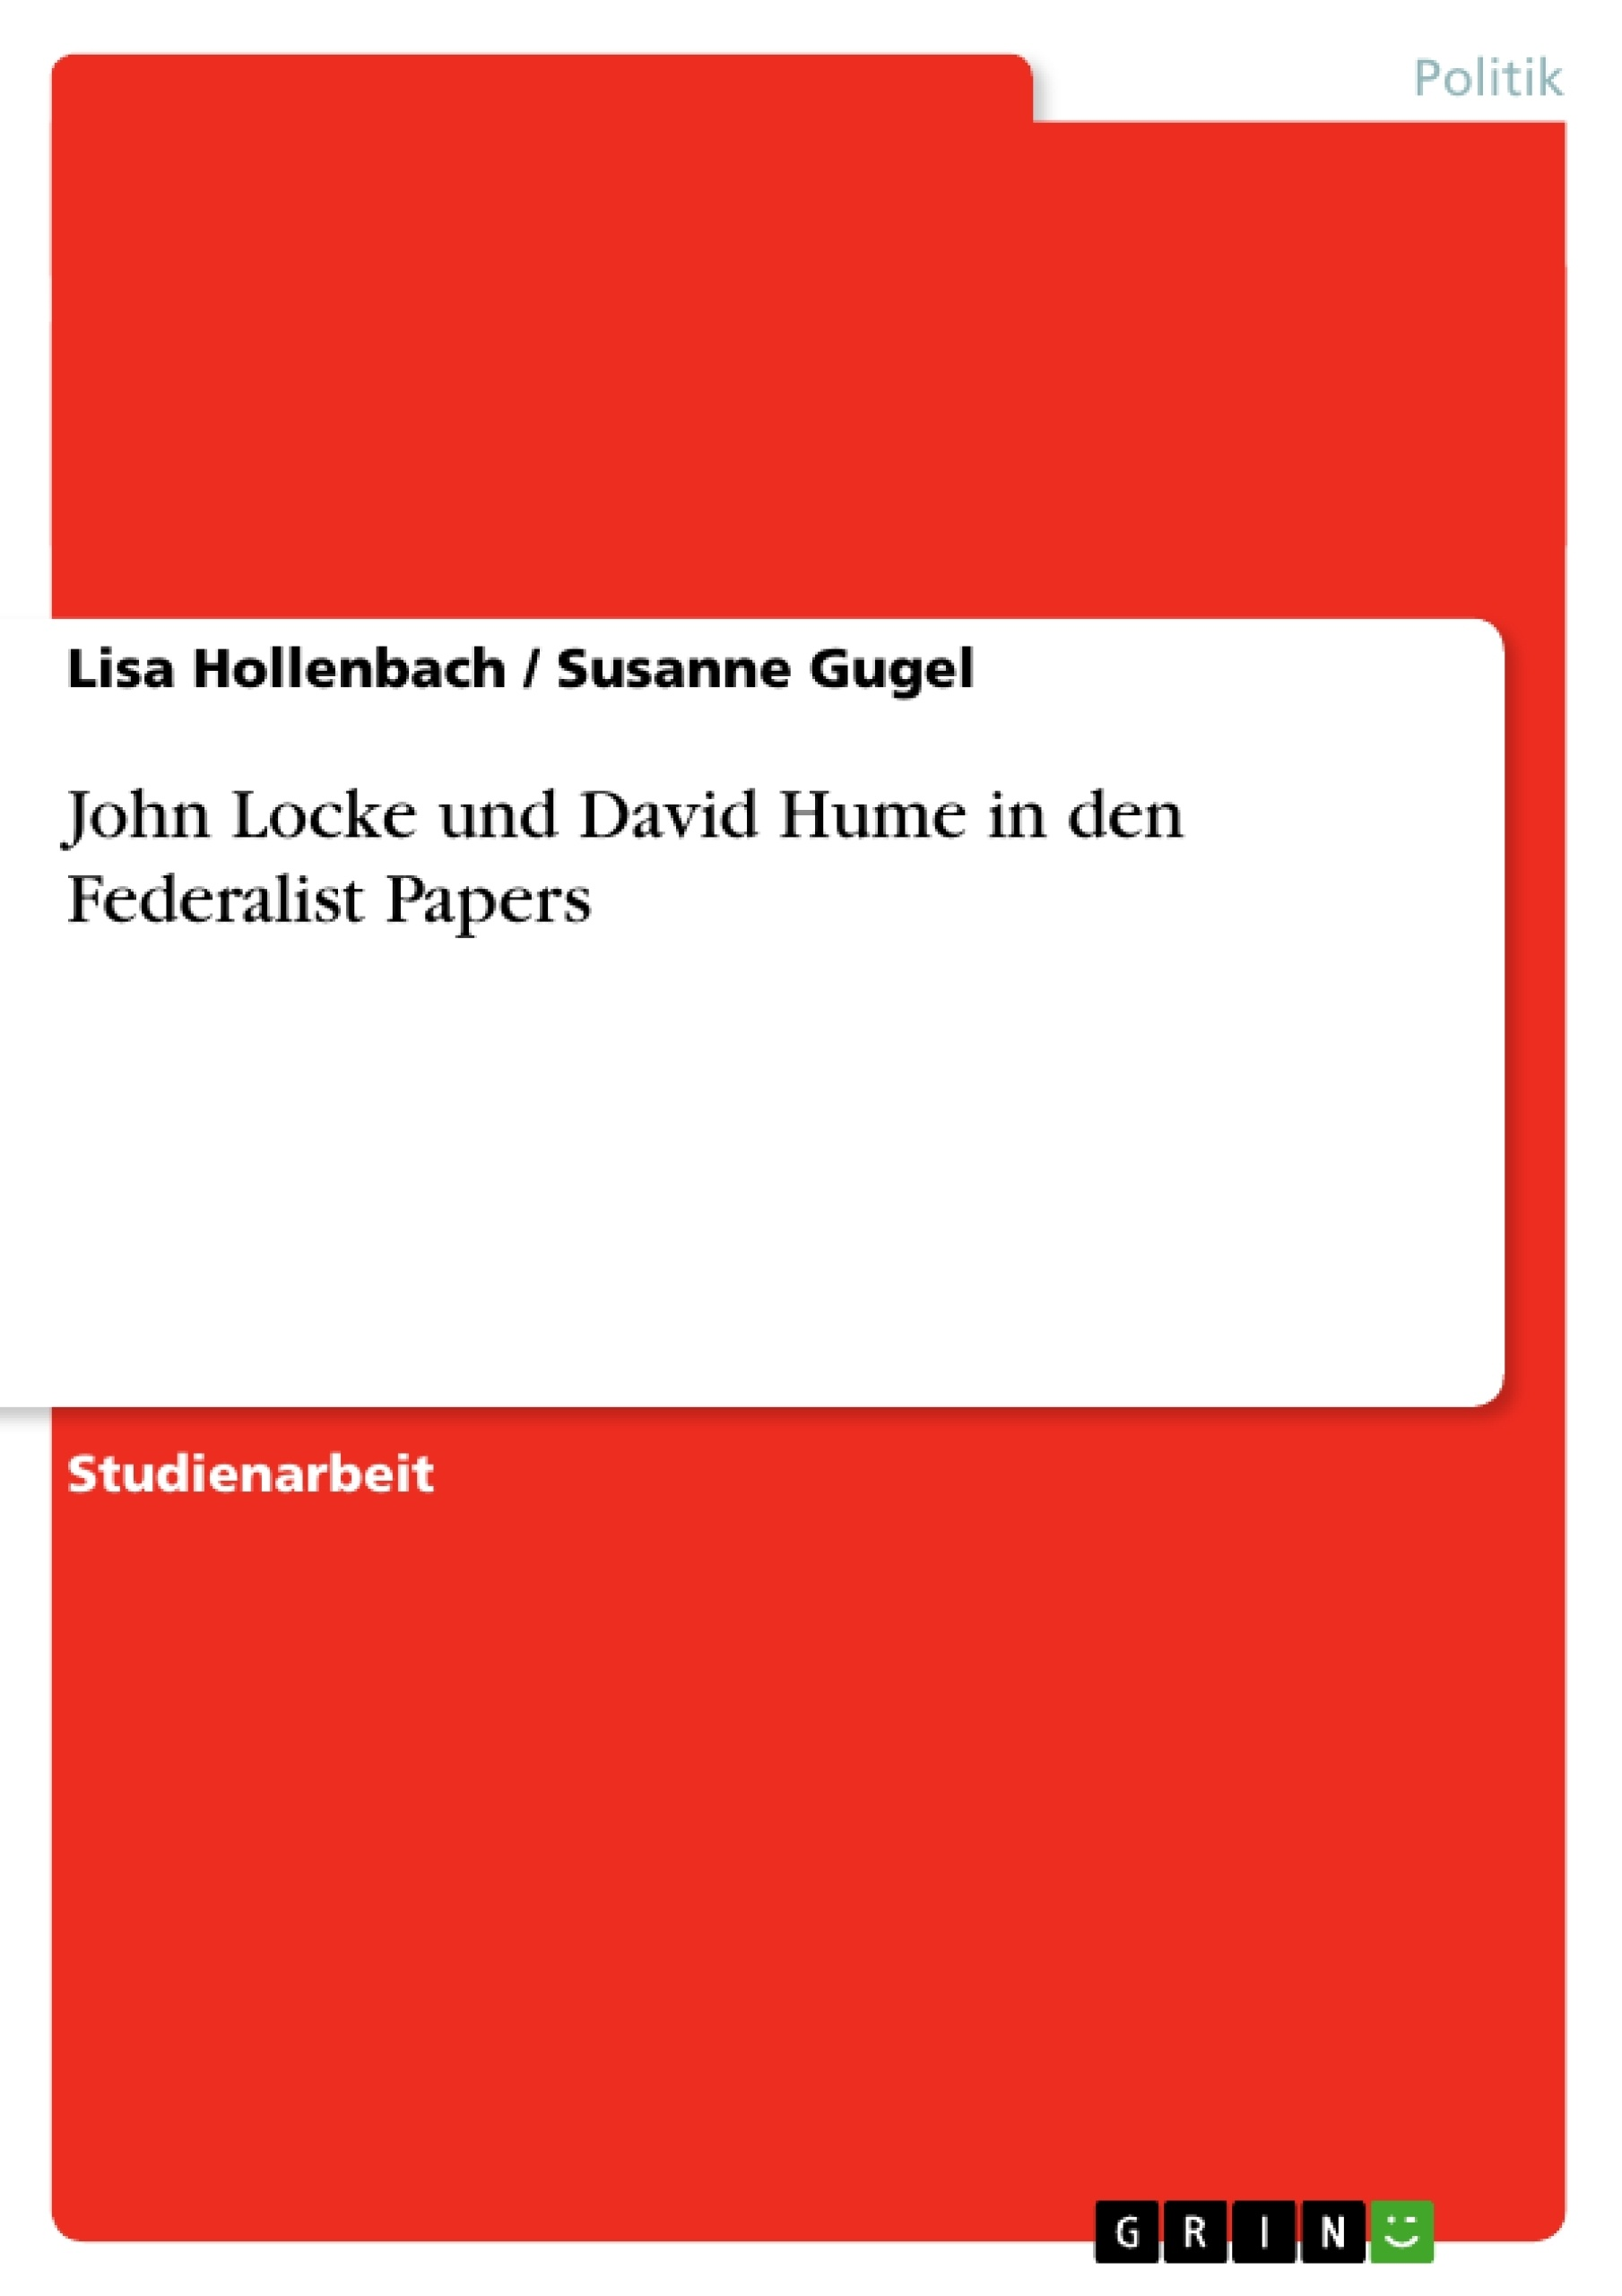 Titel: John Locke und David Hume in den Federalist Papers